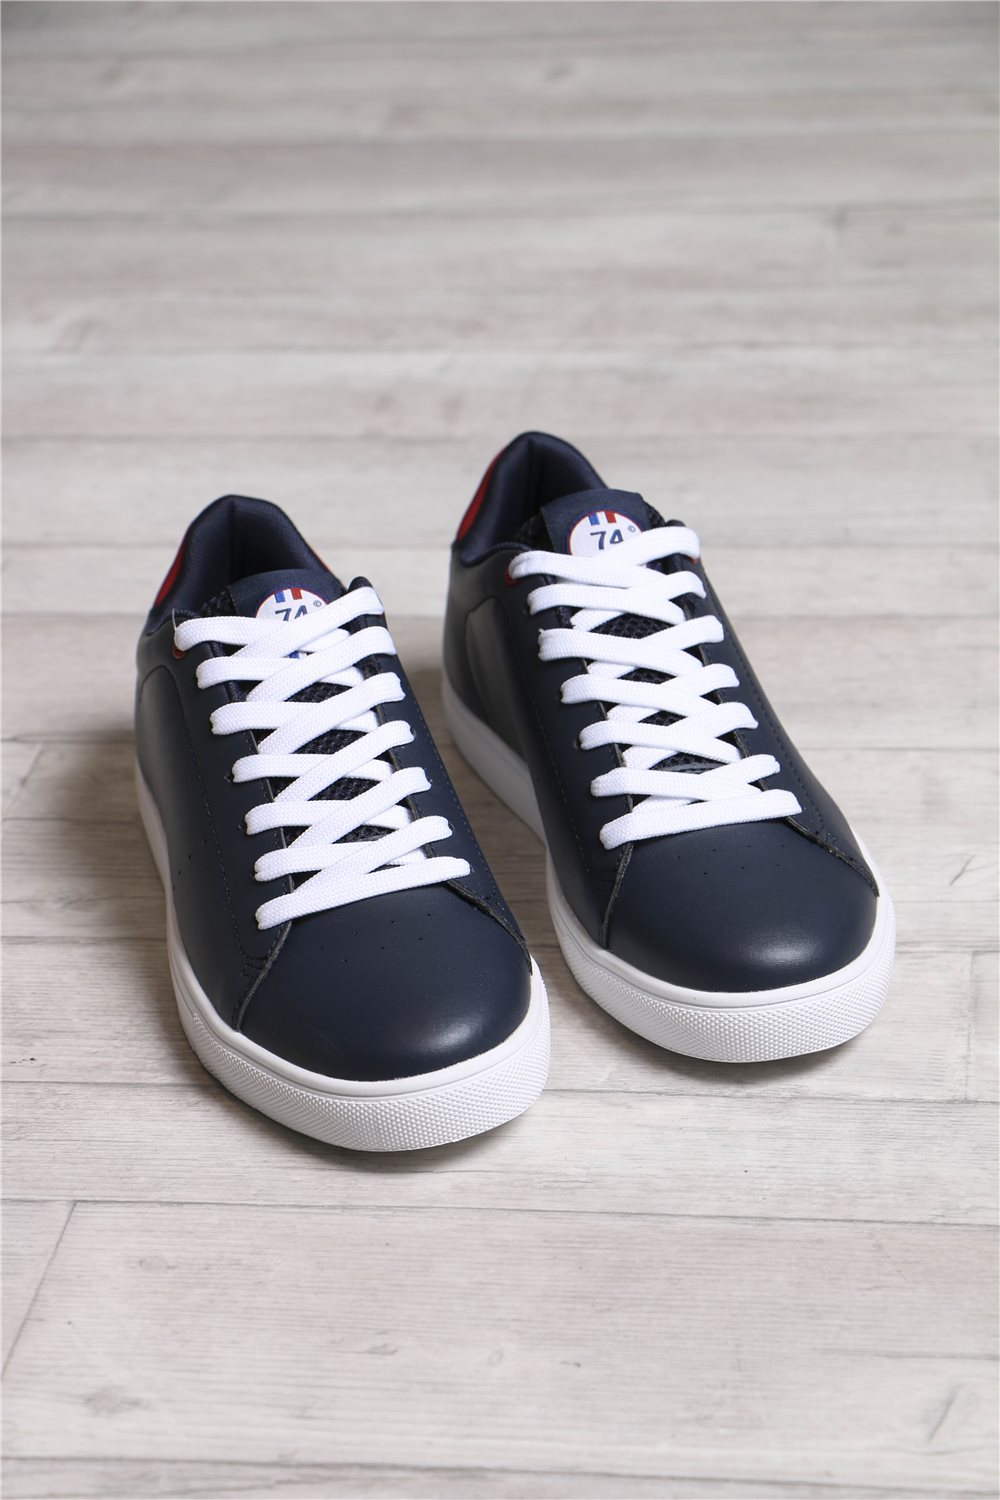 BASKETS DESS 19-2 - Couleur - Navy, Taille - 40